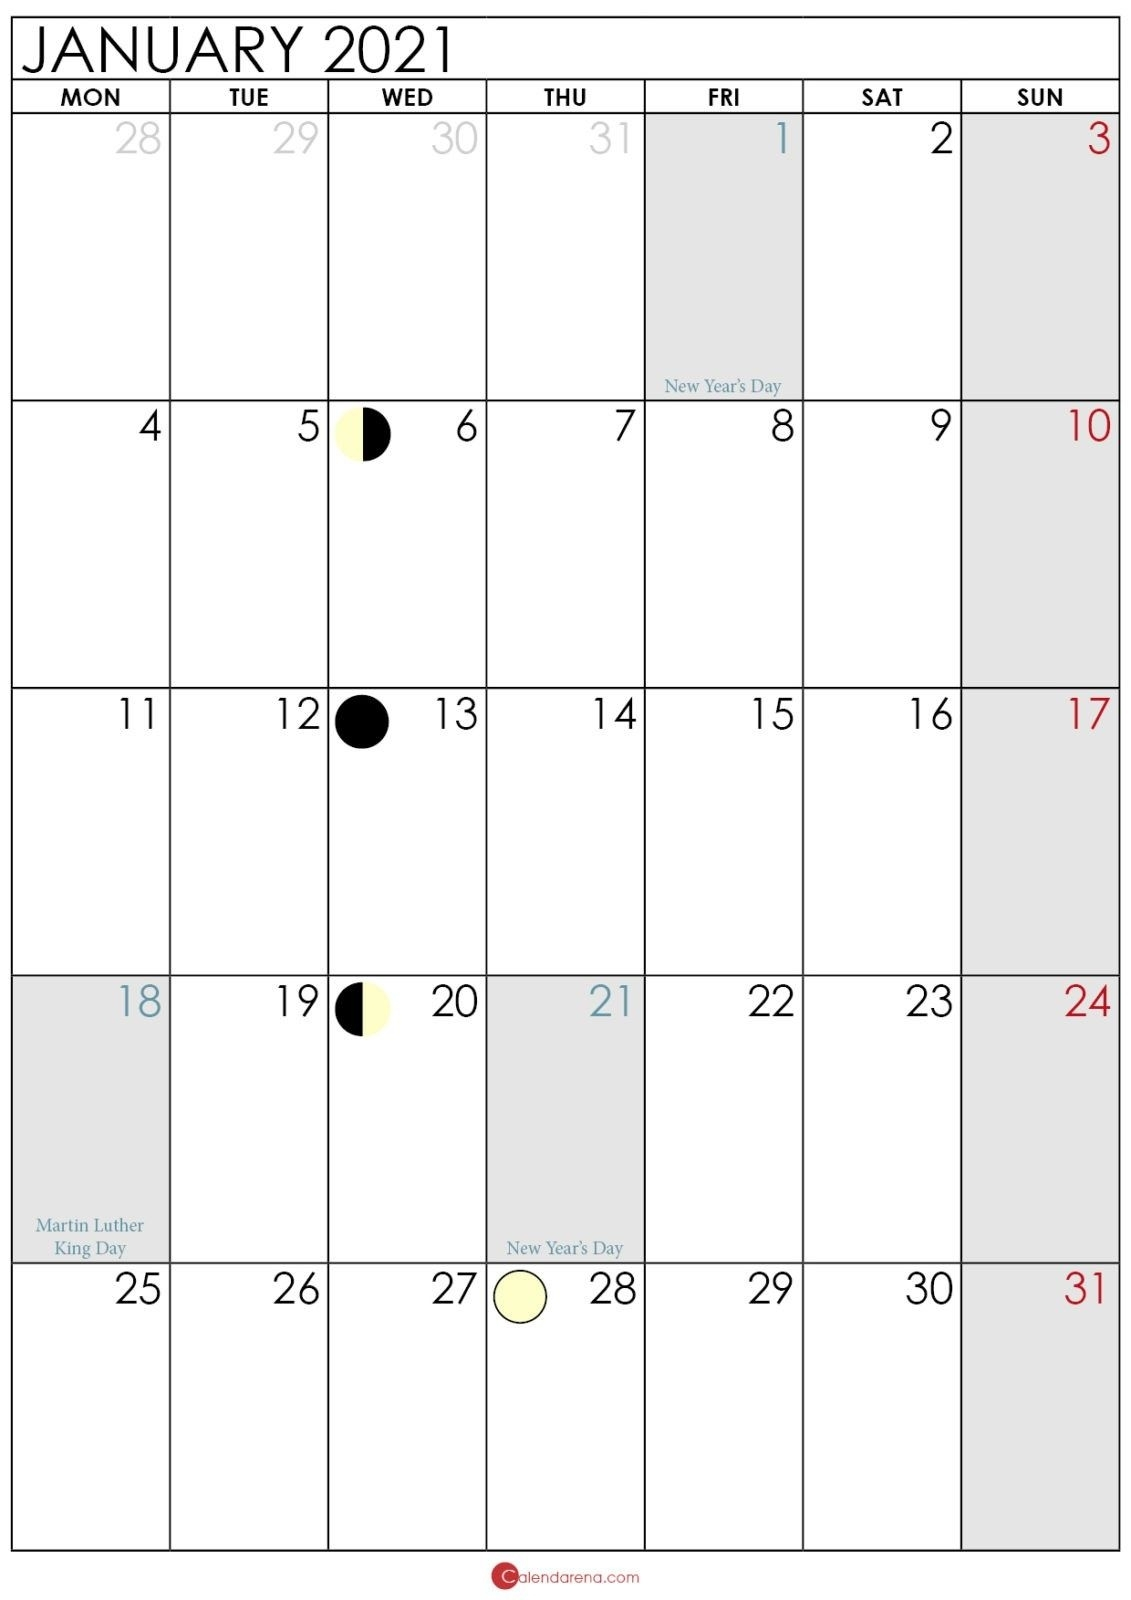 Moon Phase January 2021 In 2020 | Calendar Printables, 2021